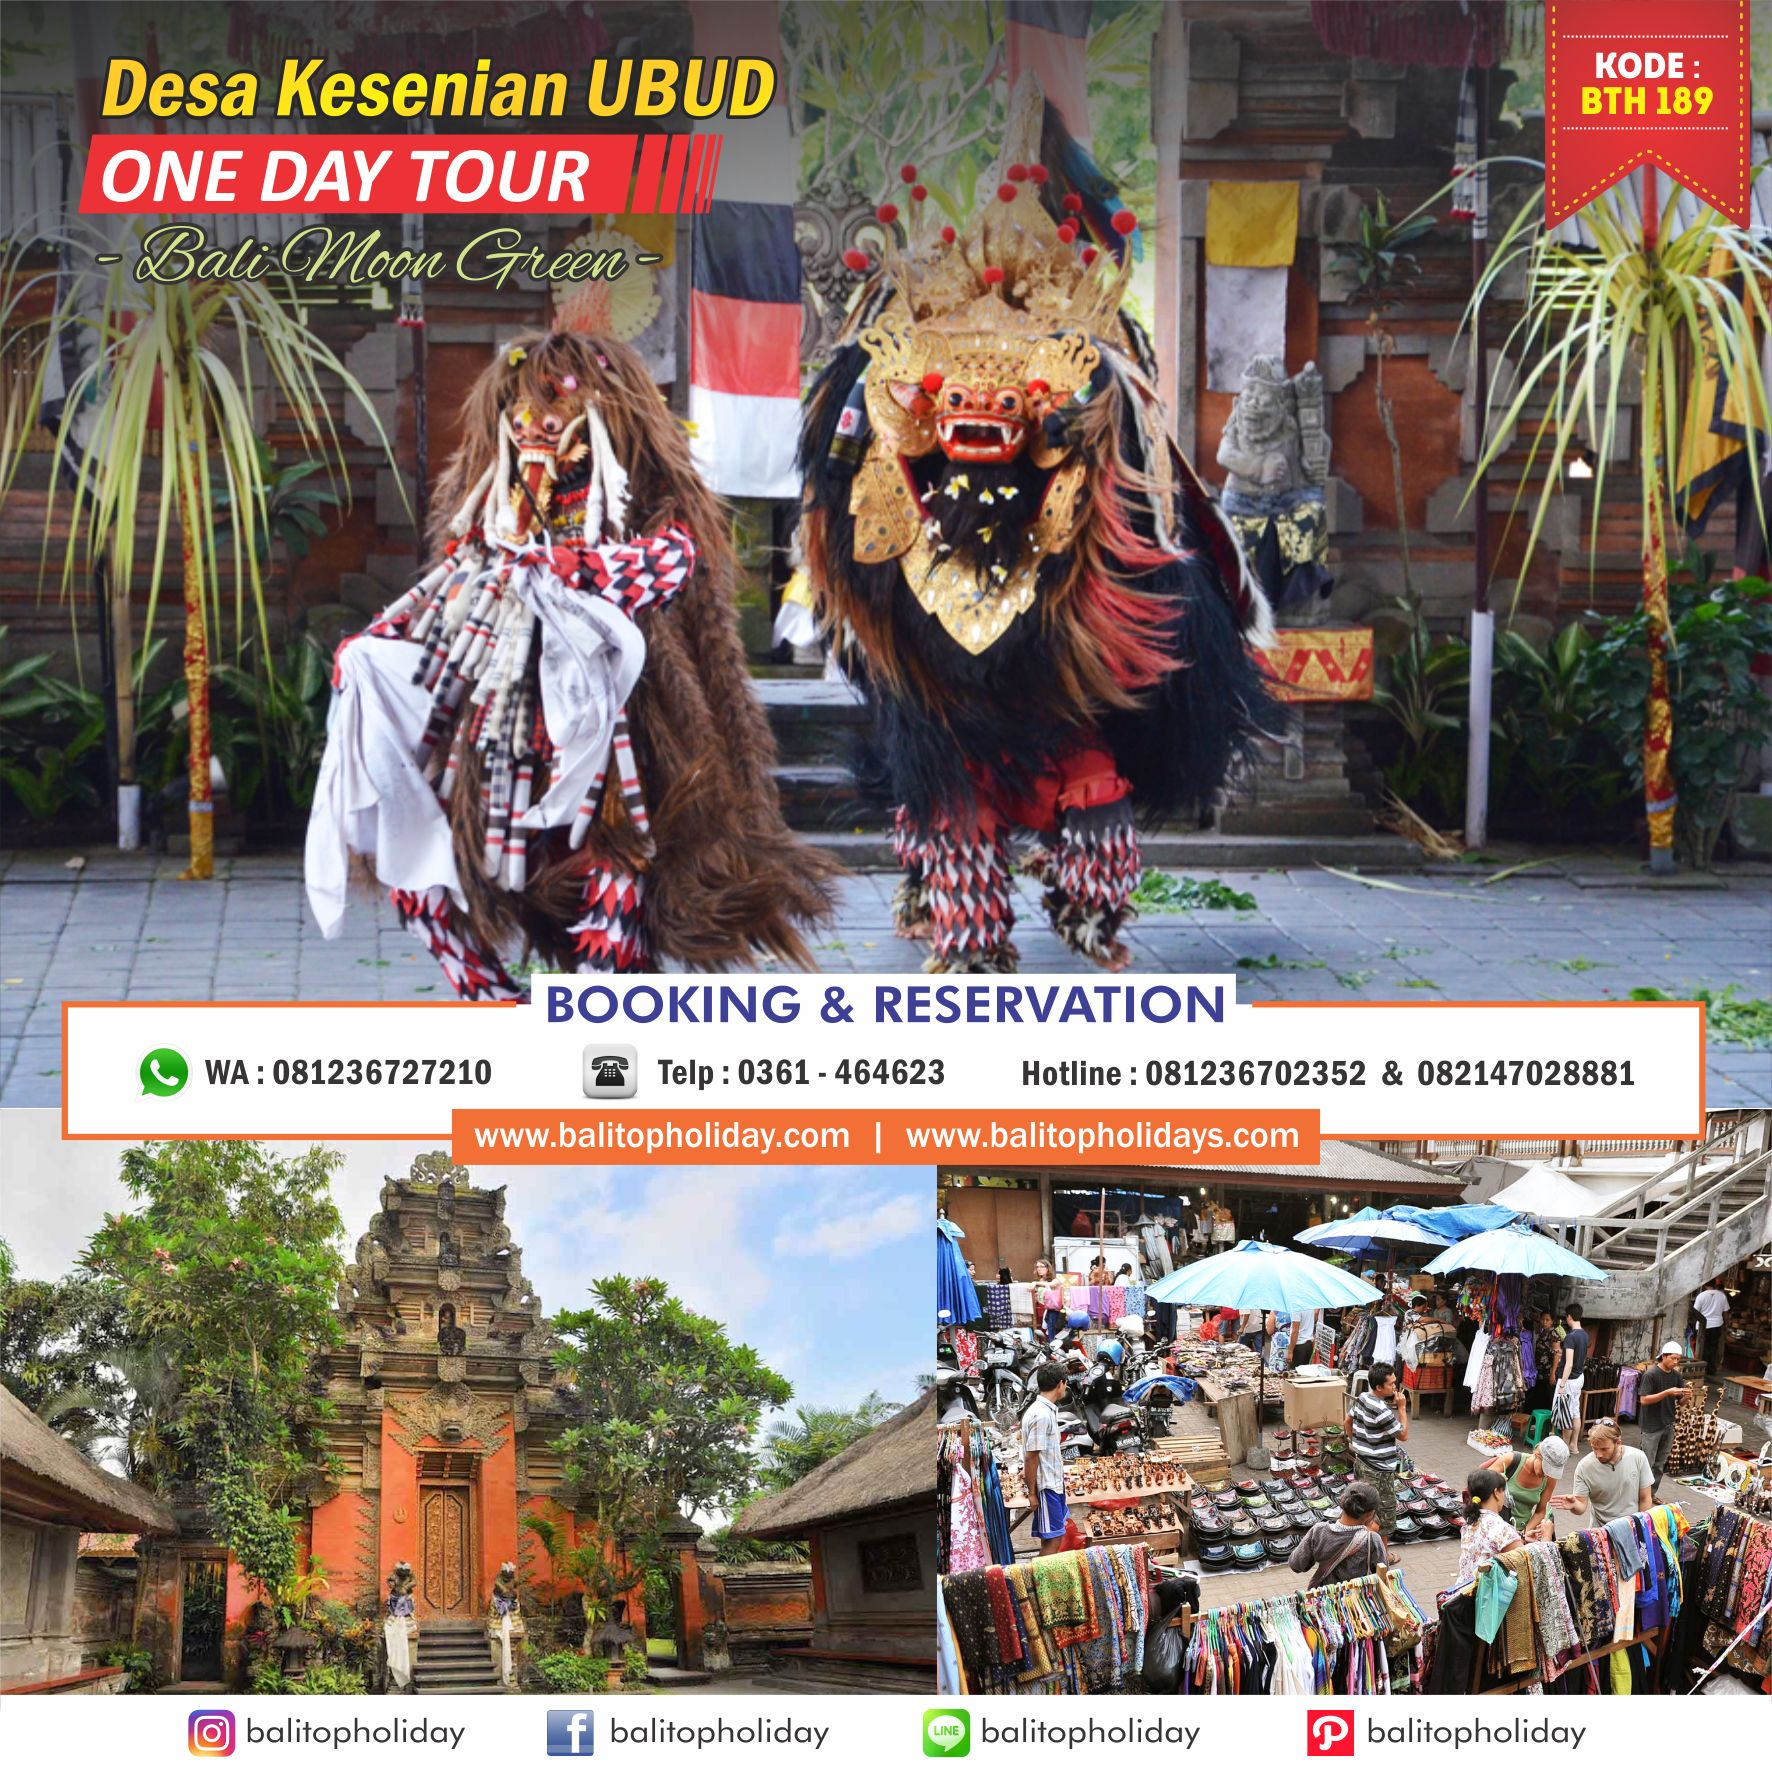 Desa Kesenian Ubud One Day Tour BTH 189 Bali Moon Green